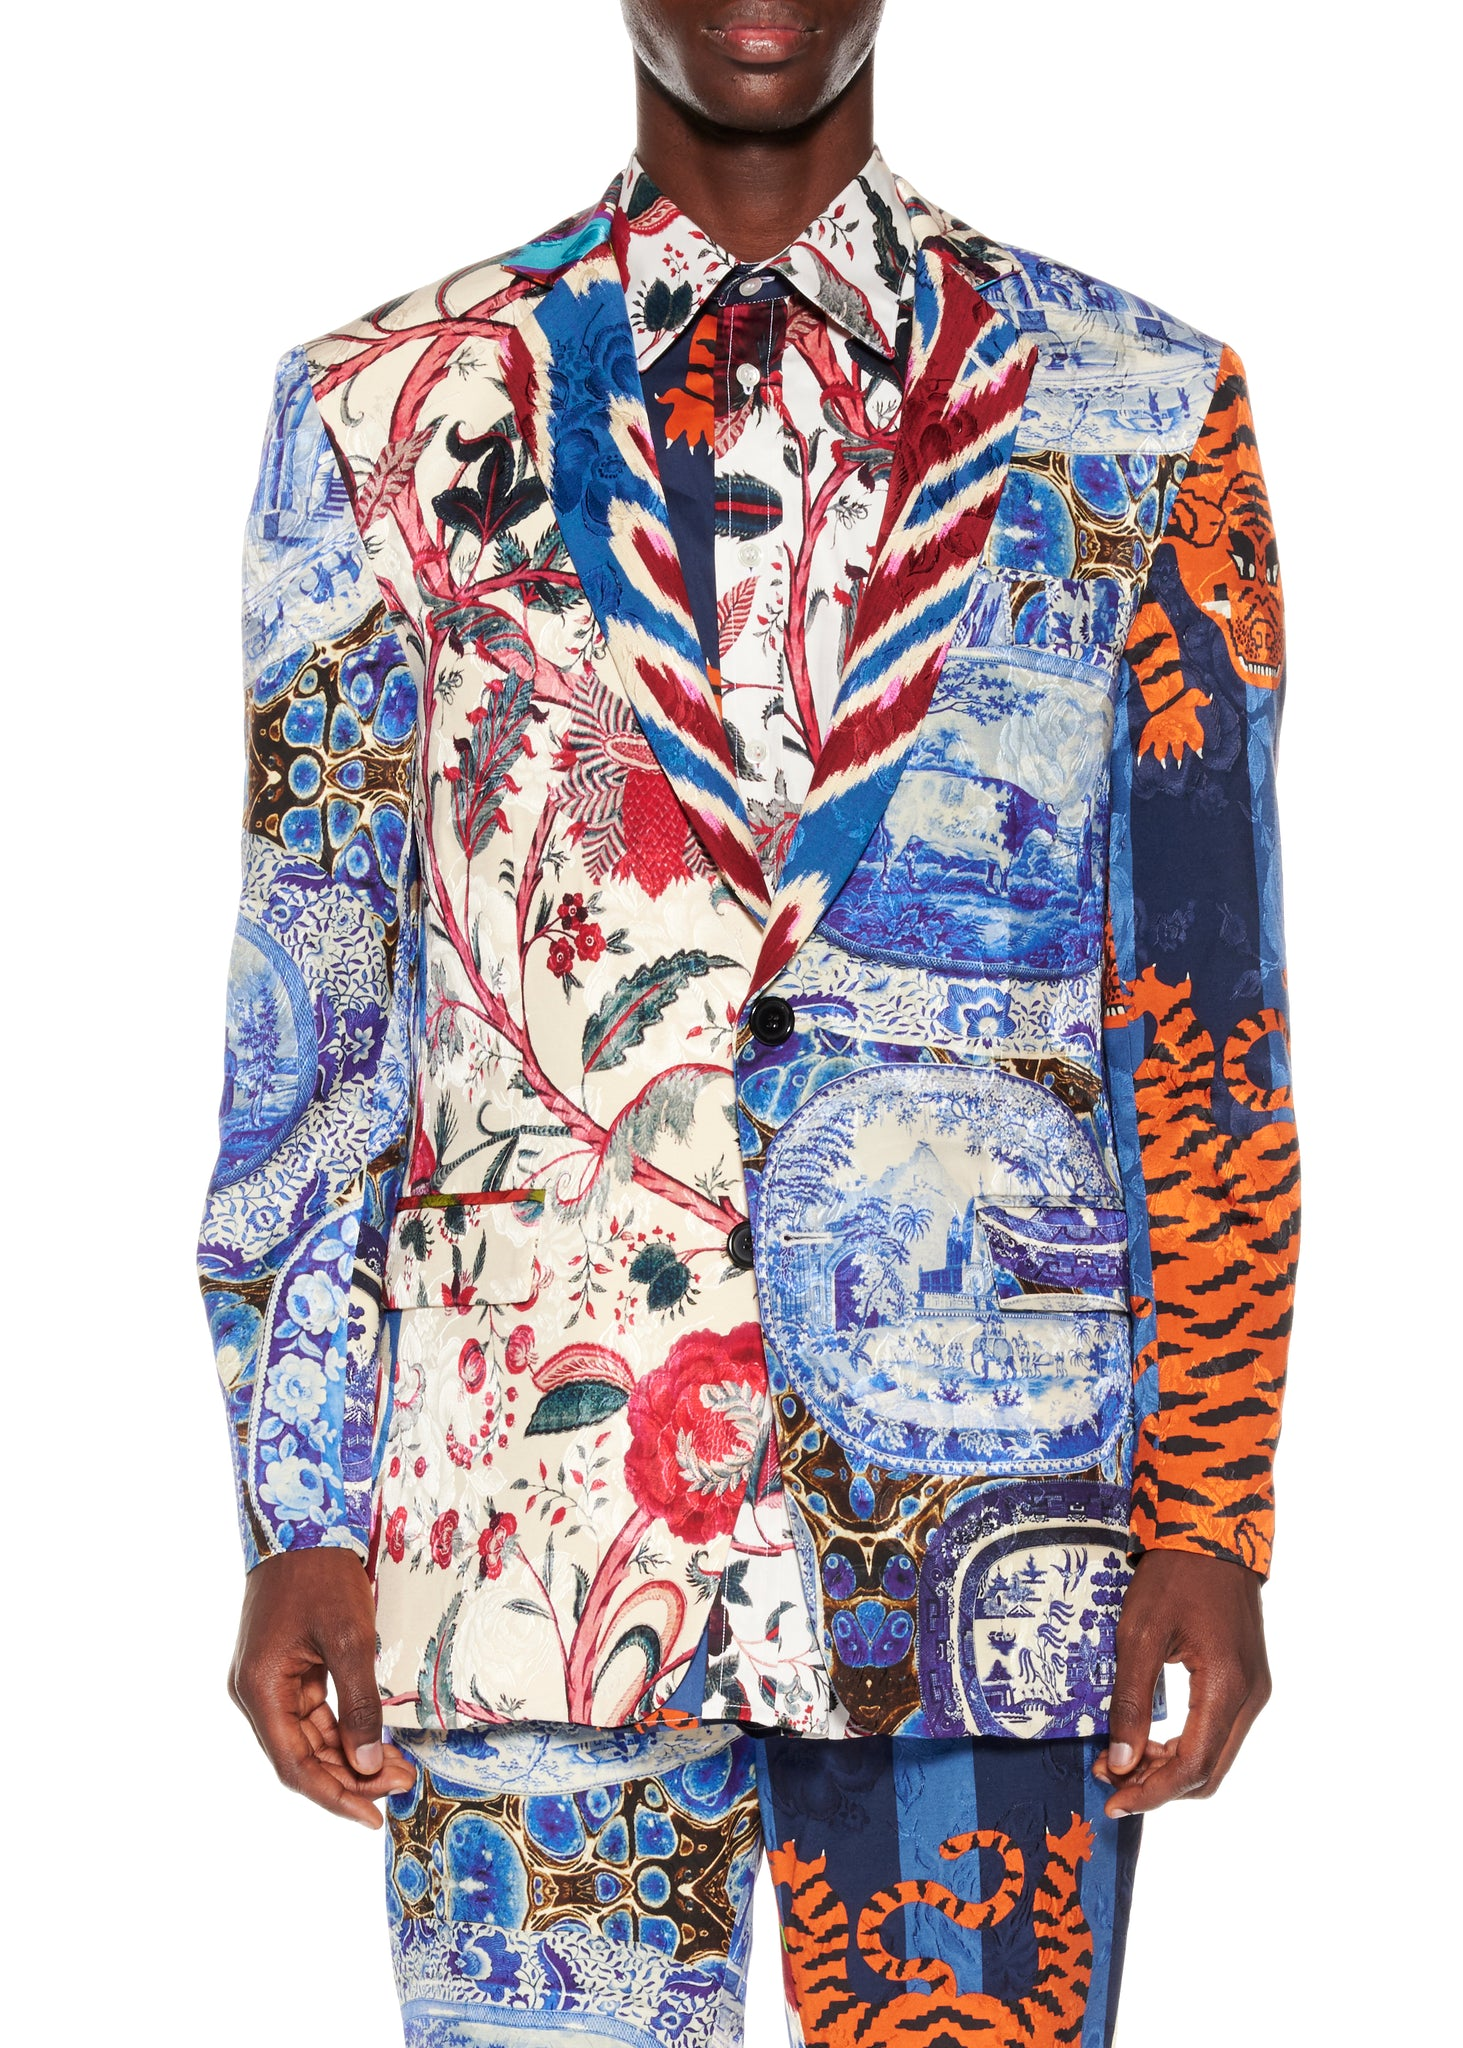 Mixed Print Suit Jacket - Men's Jackets & Coats - Libertine